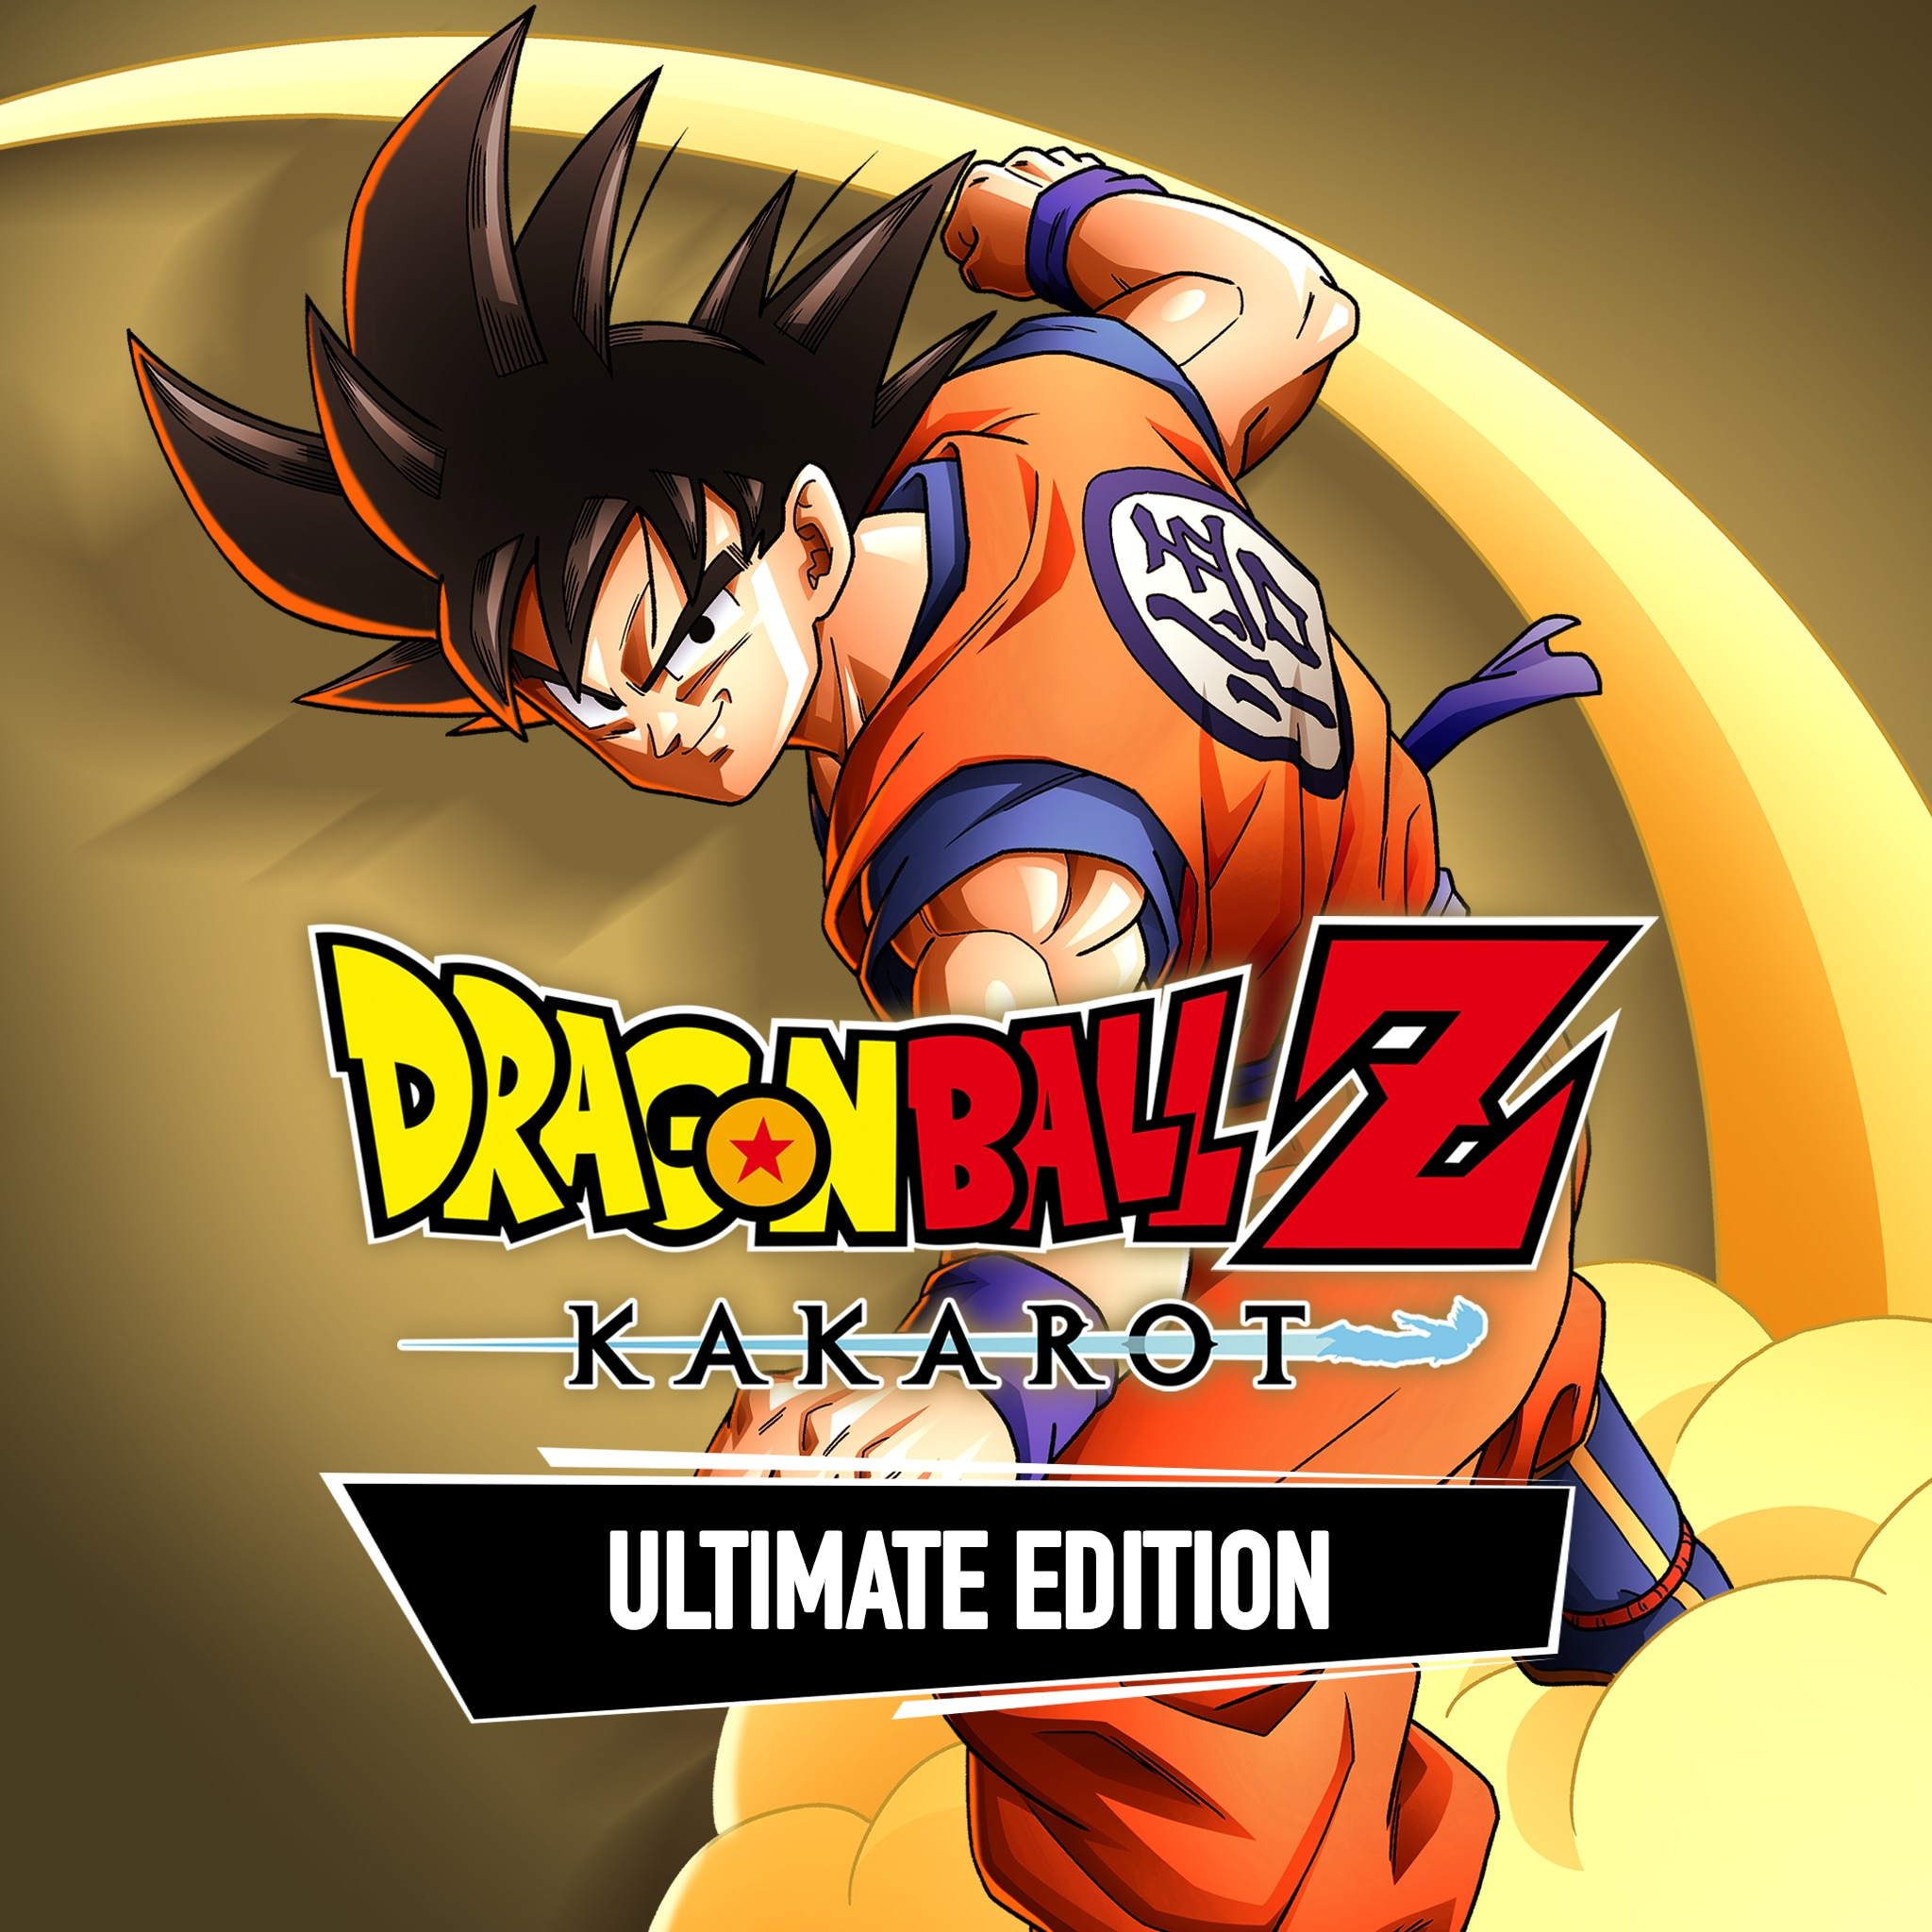 DRAGON BALL Z: KAKAROT Edición Ultimate